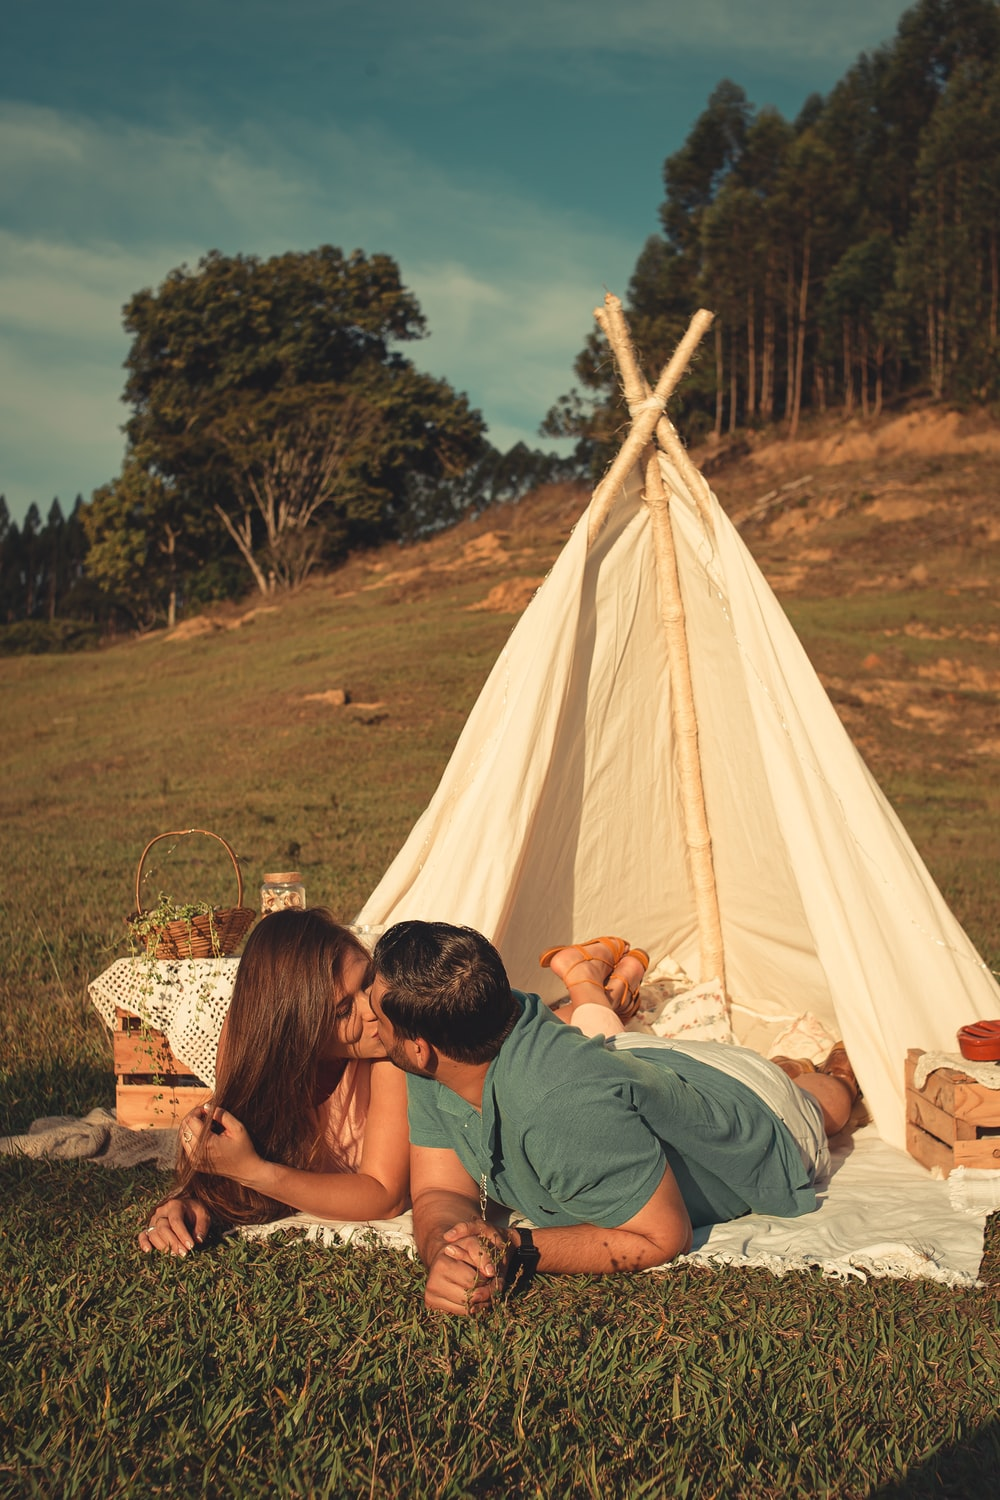 man and woman sitting on white tent during daytime